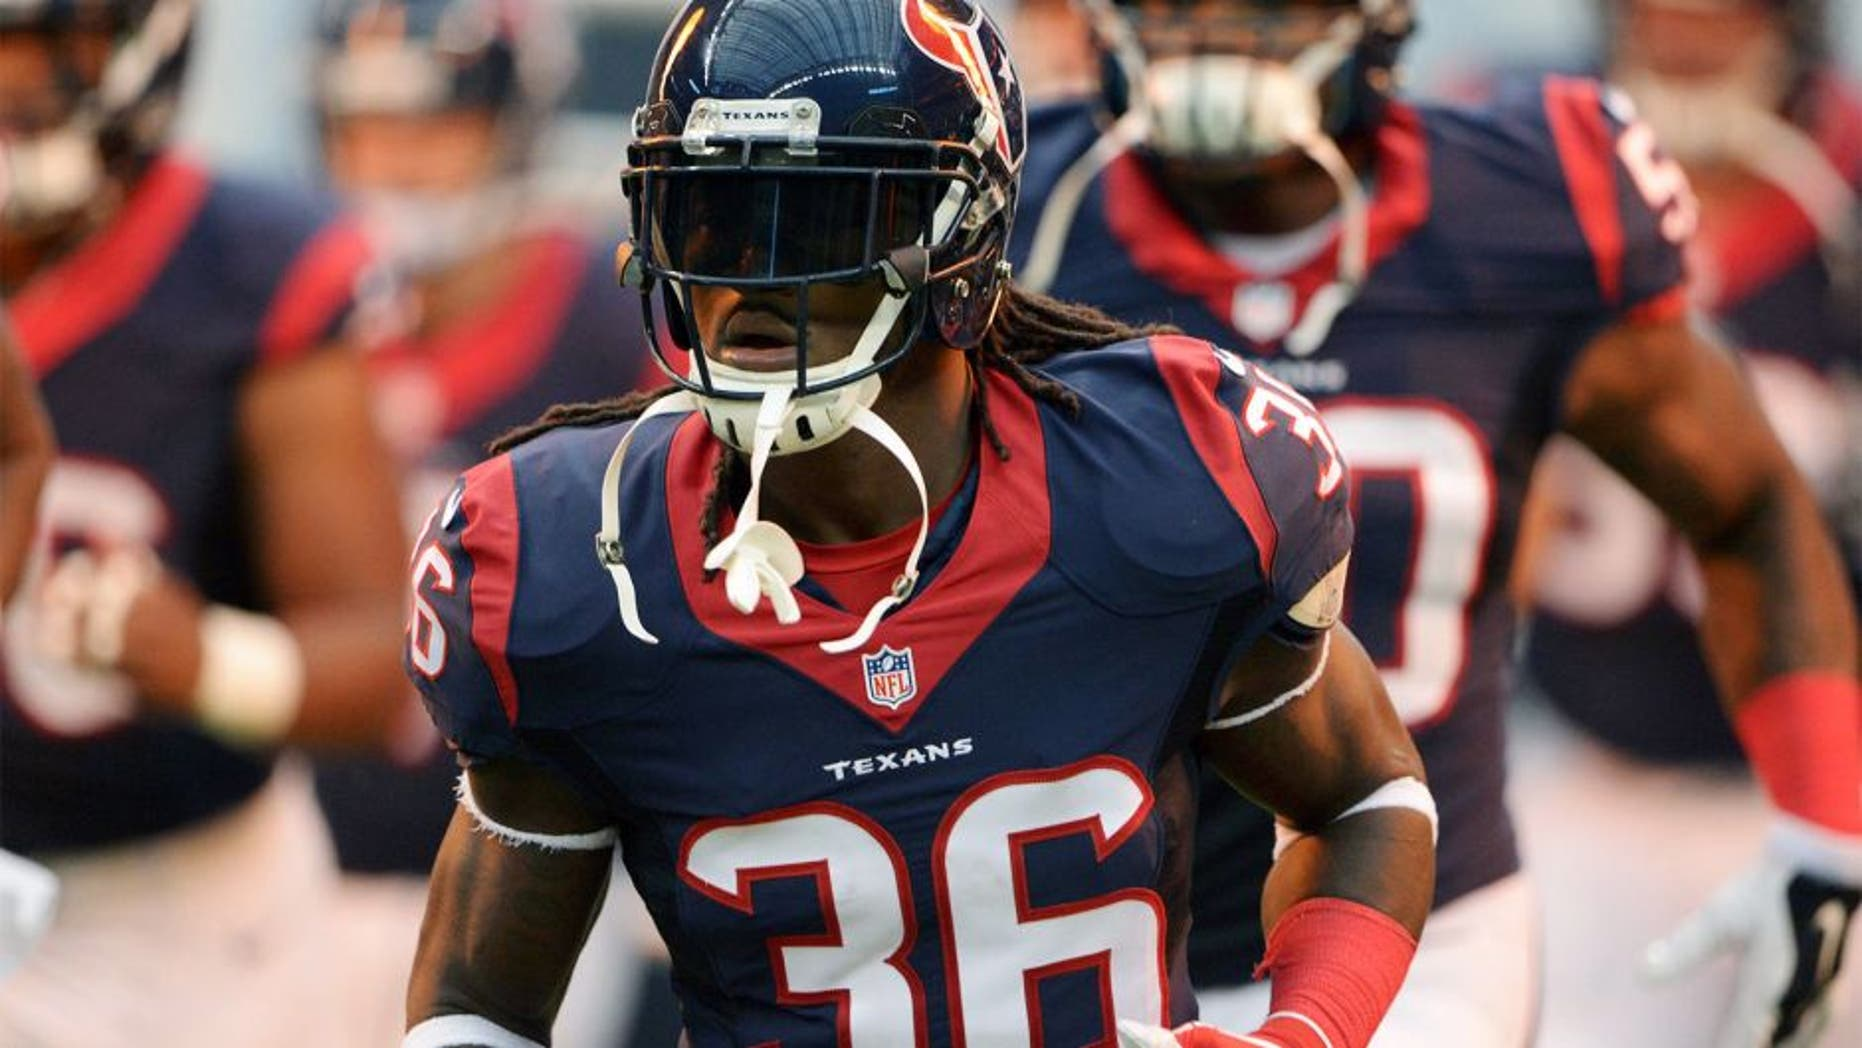 Aug 16, 2014; Houston, TX, USA; Houston Texans safety D.J. Swearinger (36) before the game against the Atlanta Falcons at NRG Stadium. Mandatory Credit: Kirby Lee-USA TODAY Sports